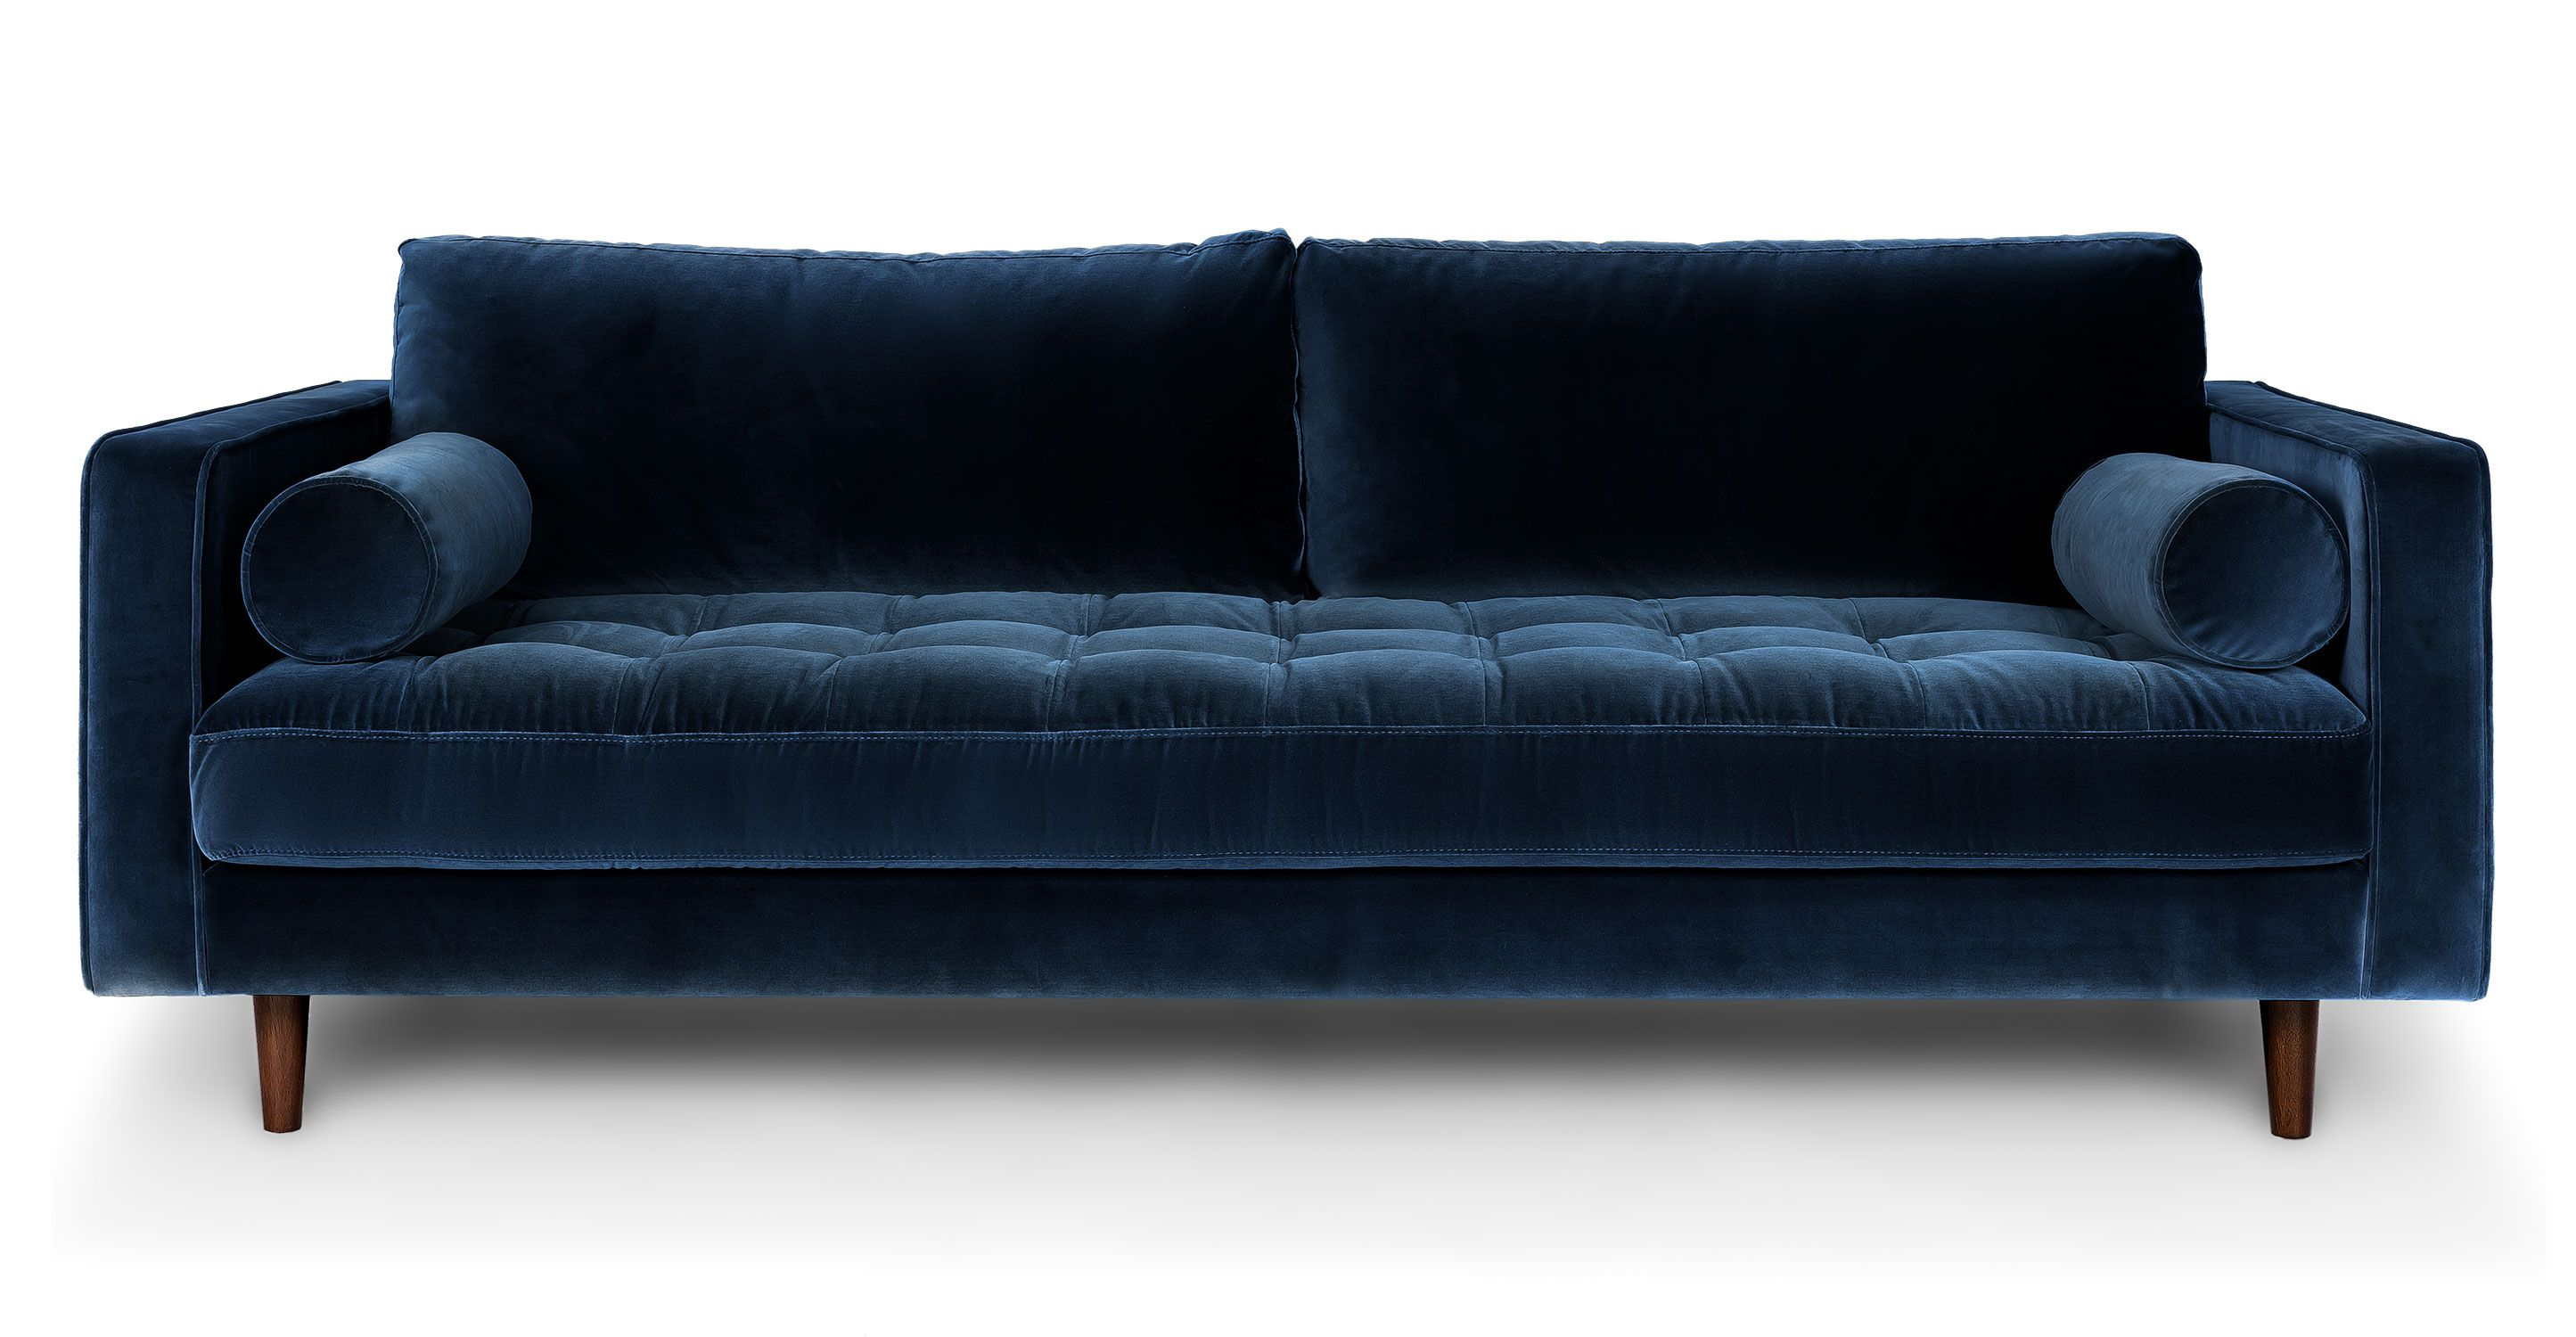 blue velvet tufted sofa upholstered article sven modern furniture scandinavian furniture. Black Bedroom Furniture Sets. Home Design Ideas